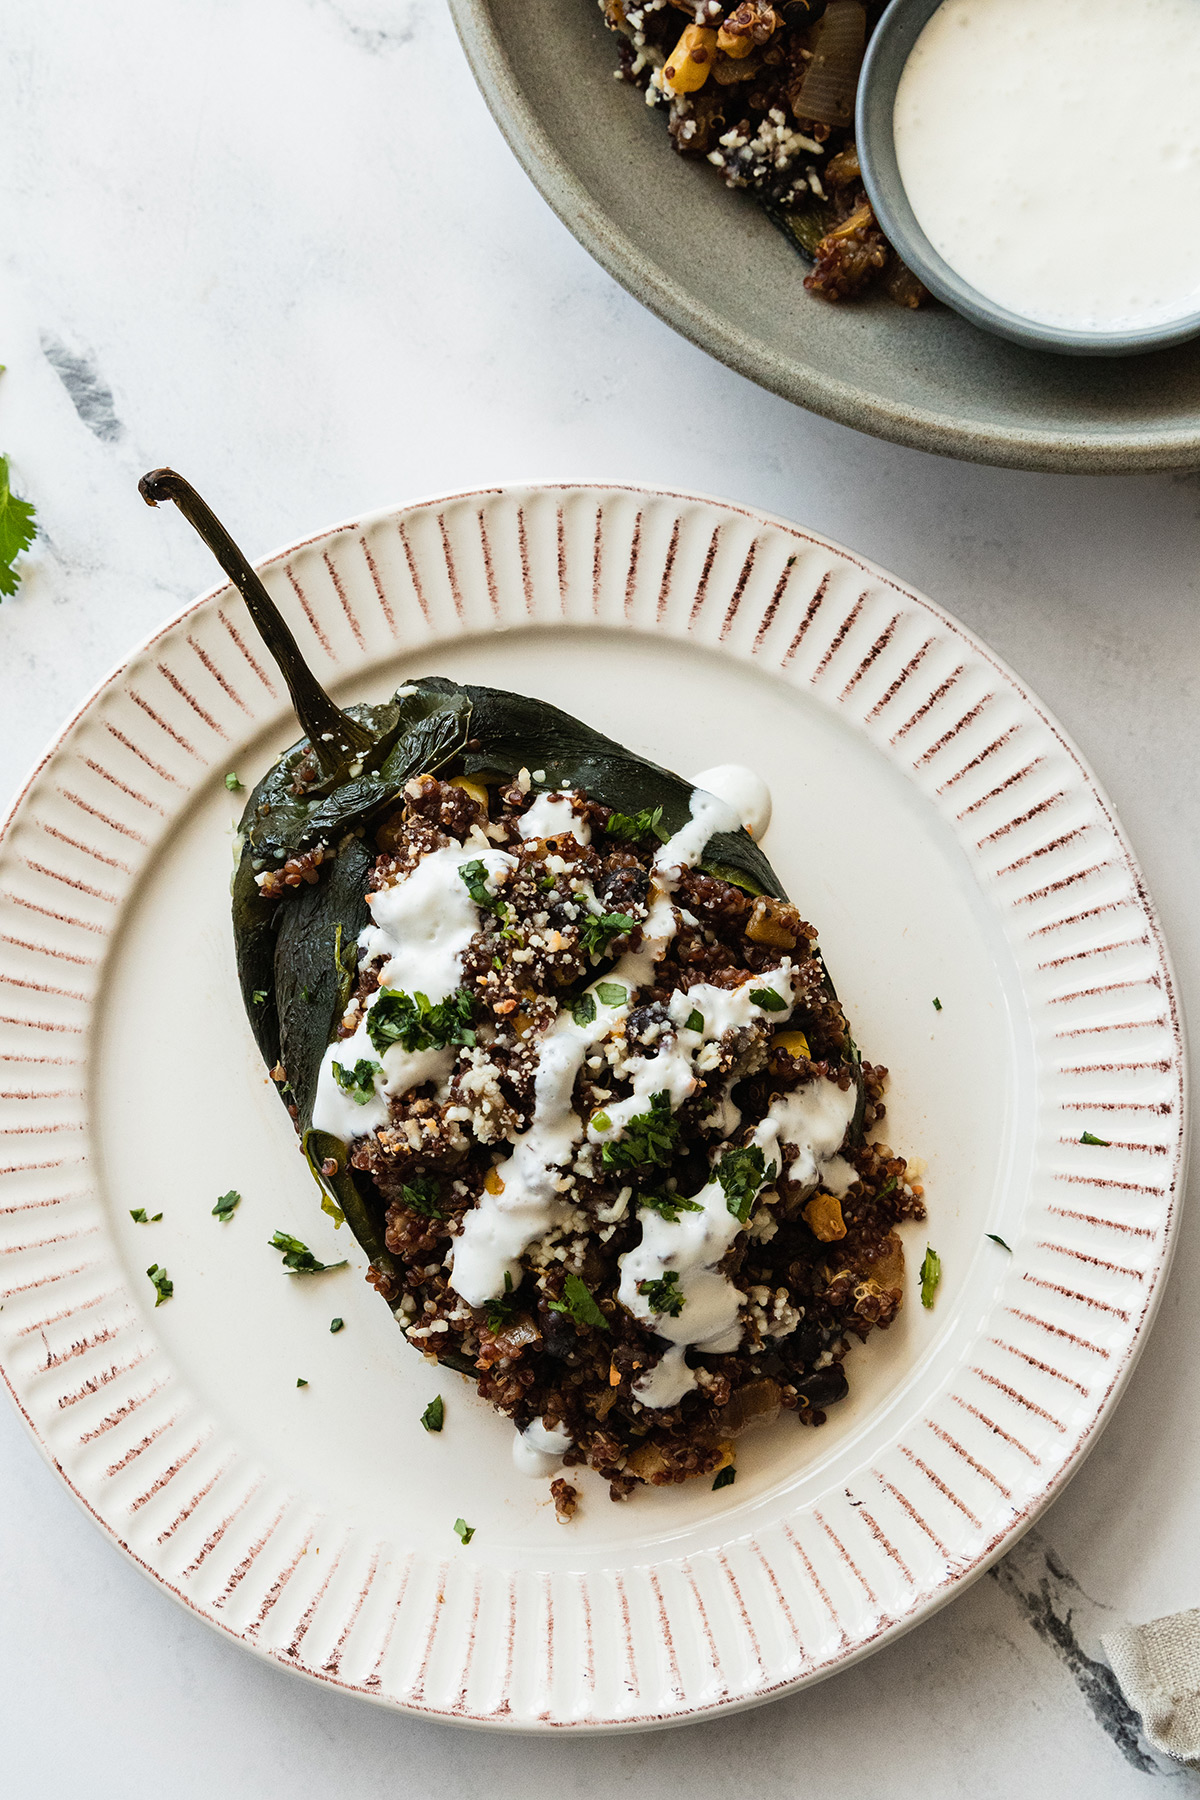 plated dish of one vegetarian stuffed poblano pepper